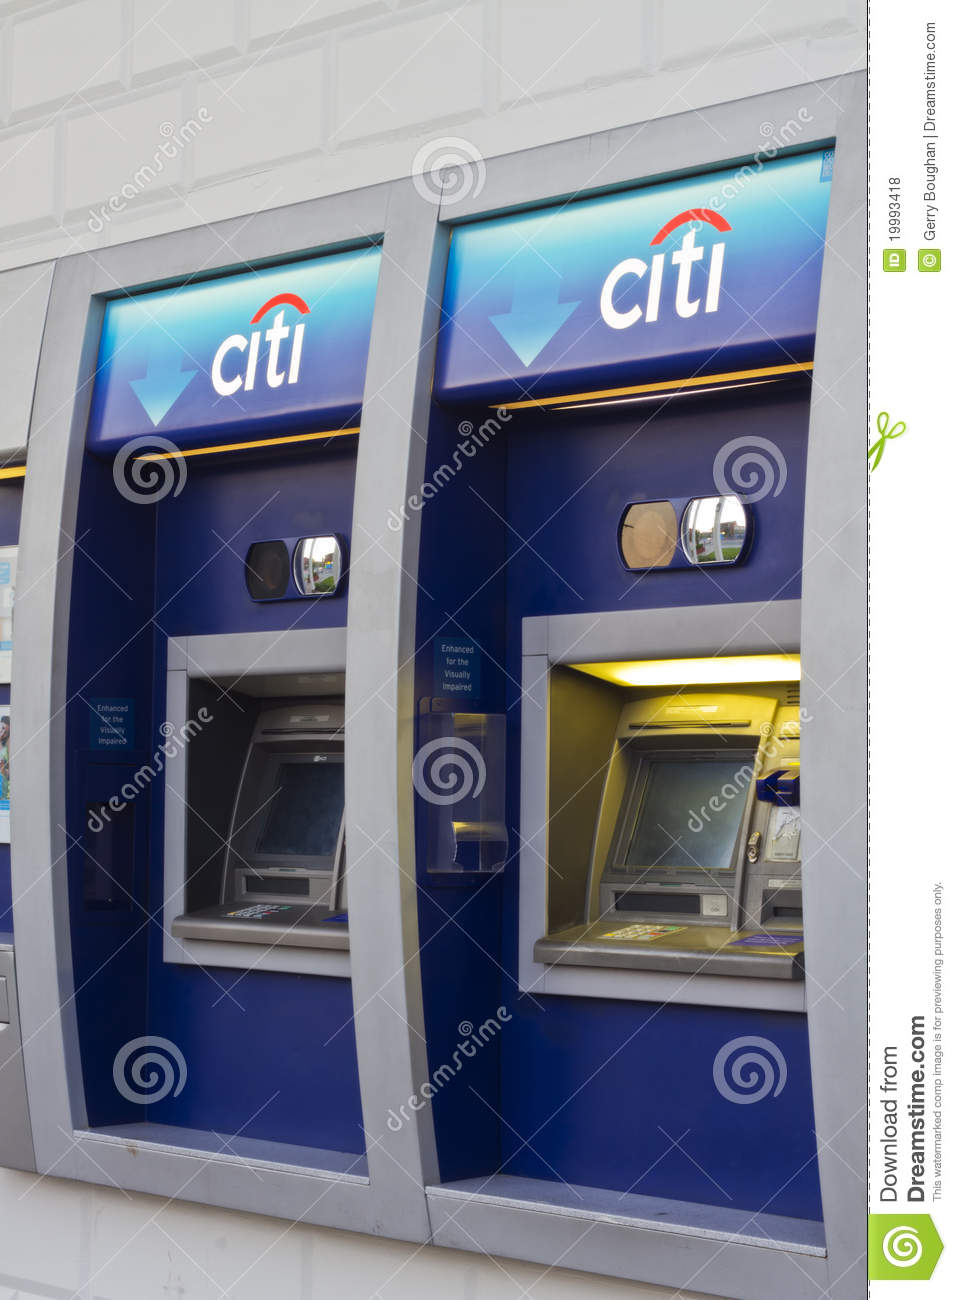 citibank atm with logo at branch bank